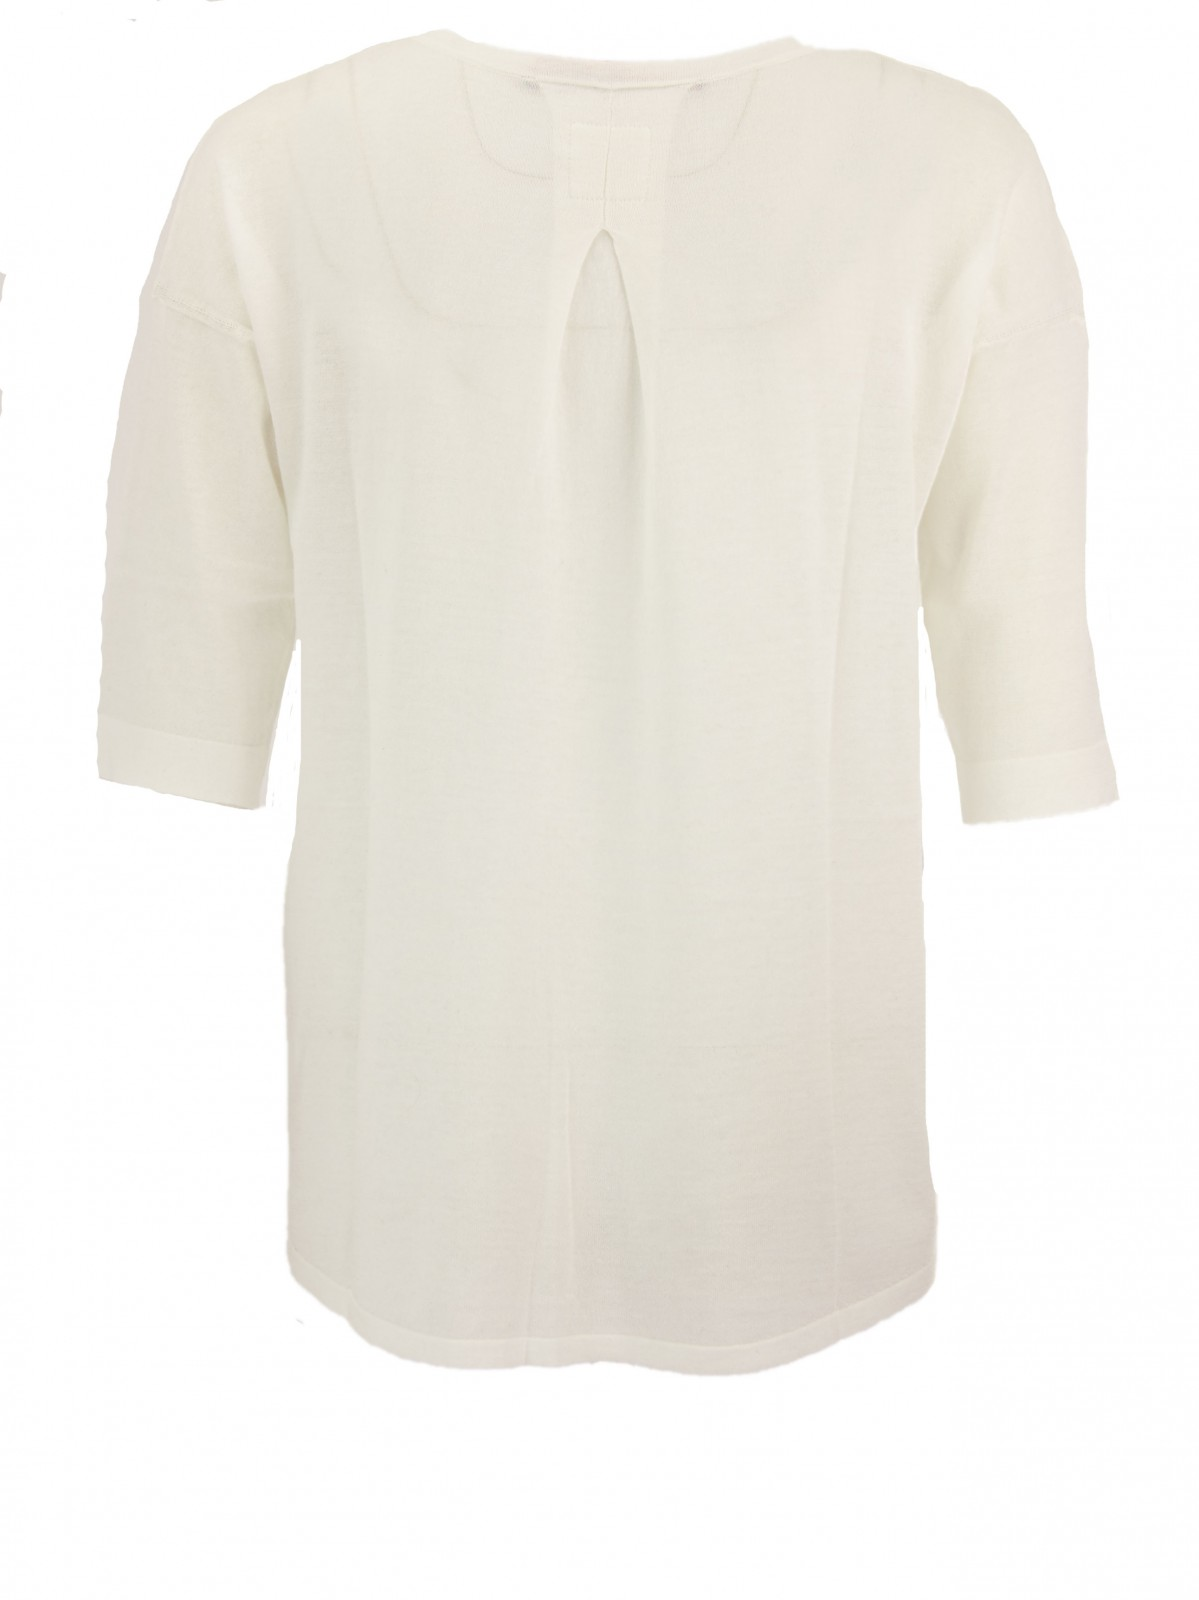 Feinstrick Boxy Shirt in White